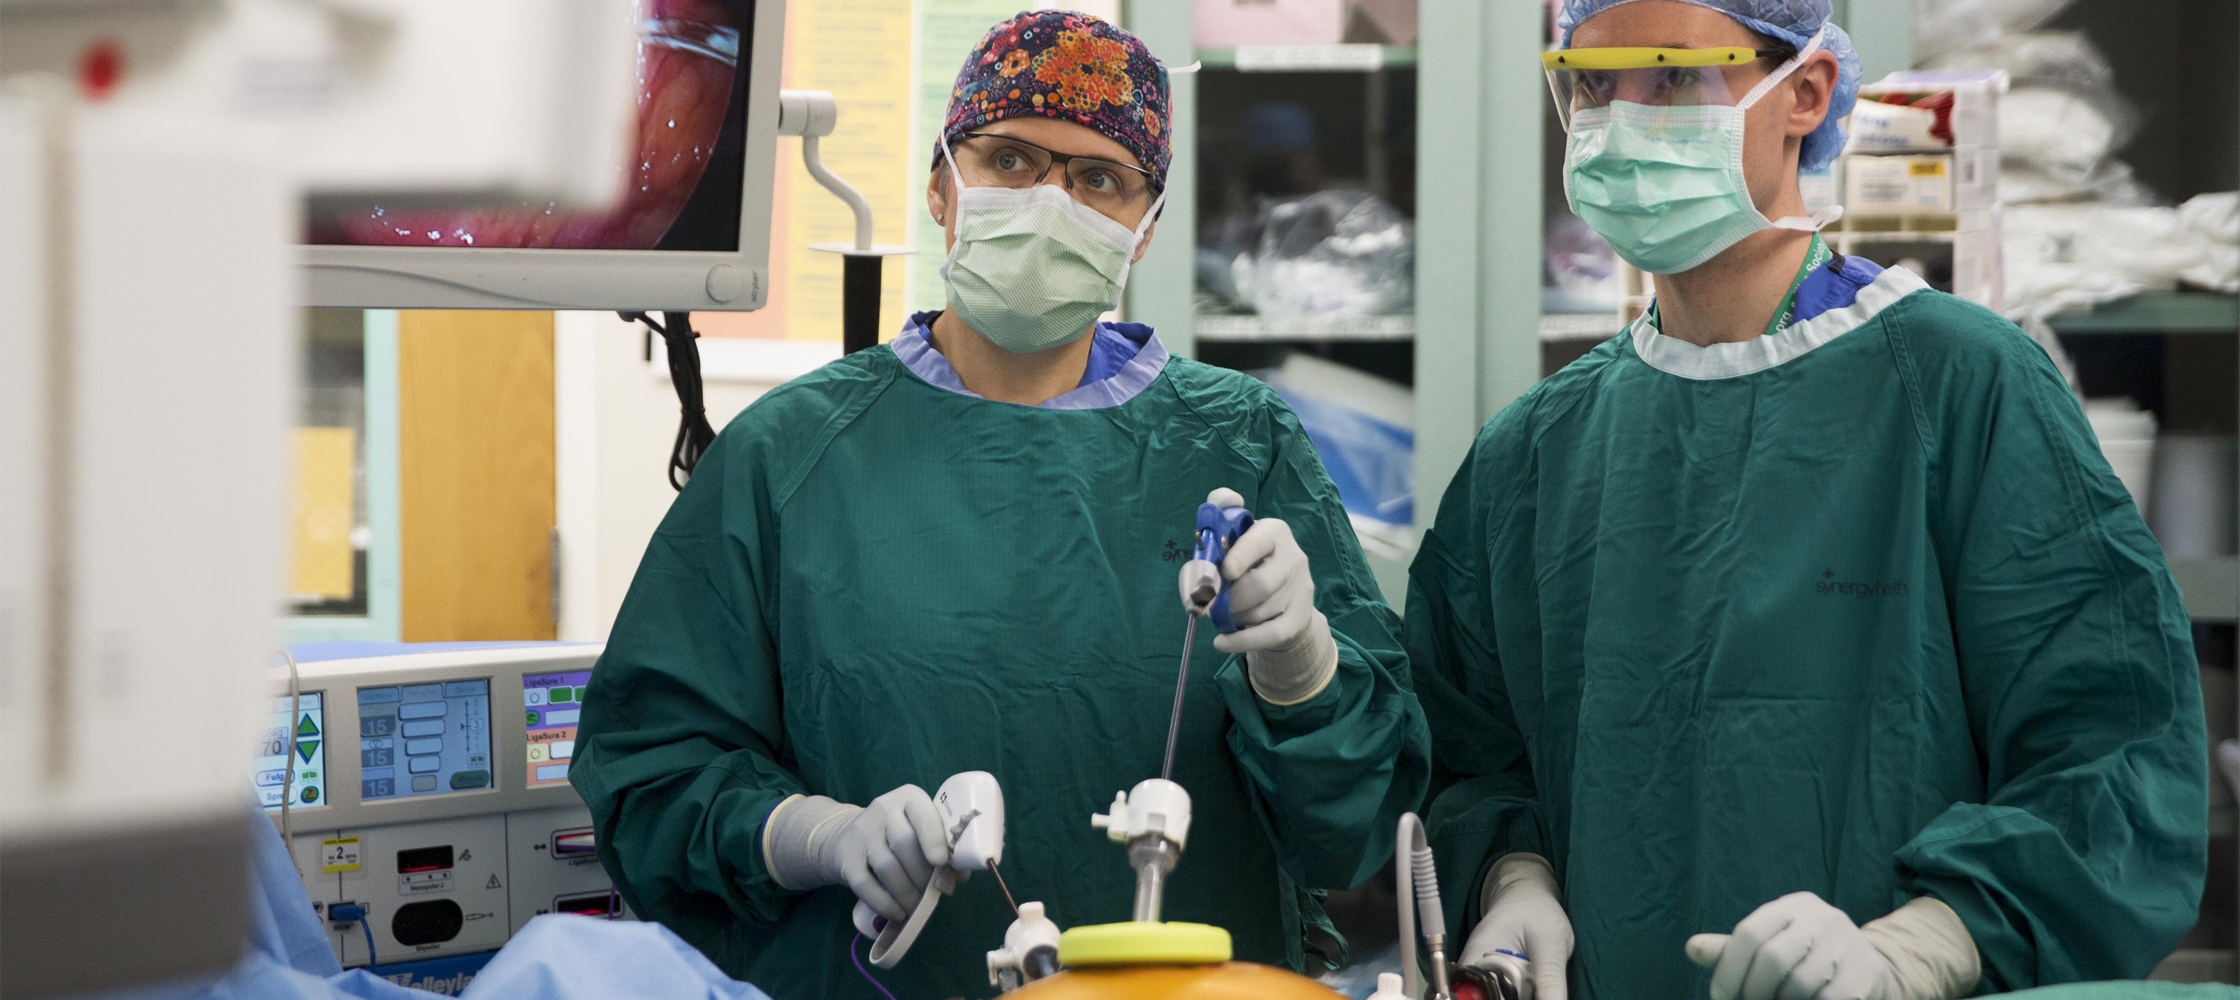 Julie Thacker, MD, left, and surgical resident Paul Speicher perform surgery at Duke University Hospital.